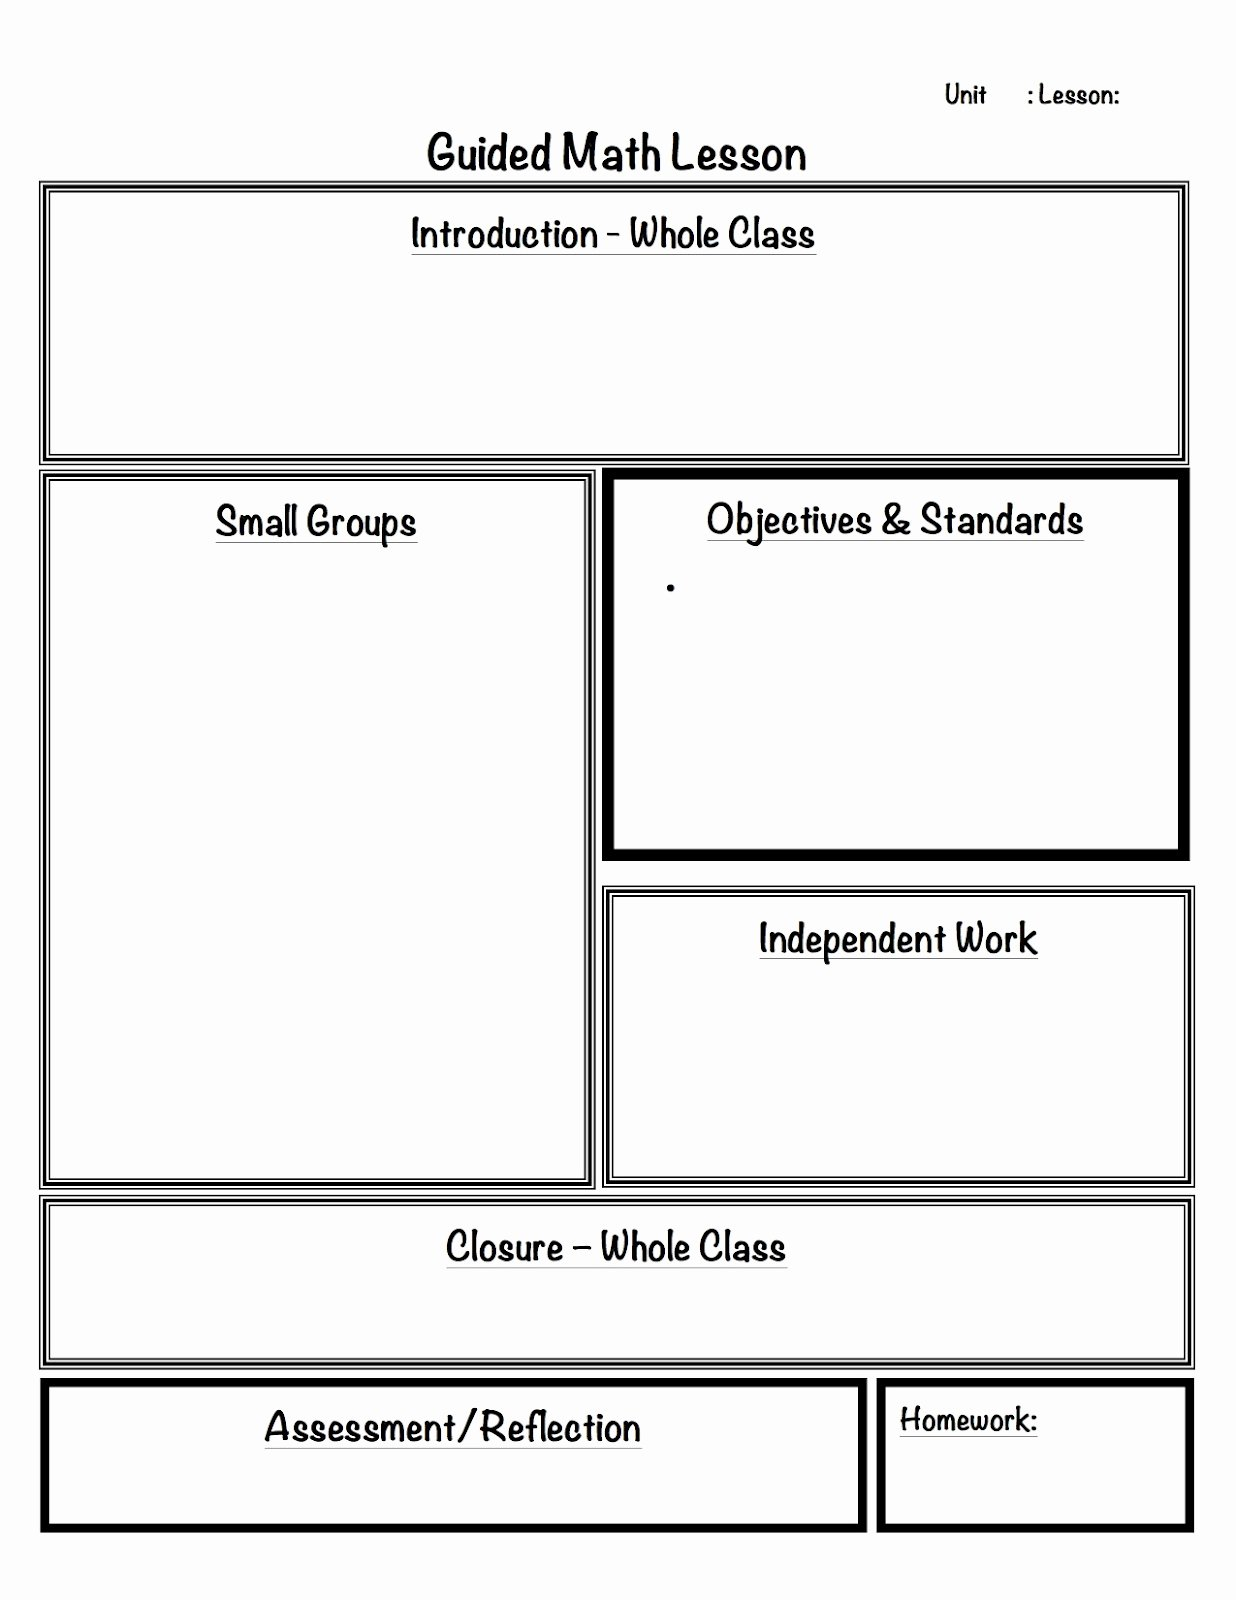 Math Workshop Lesson Plan Template Elegant Its You Its Always and Guided Math On Pinterest